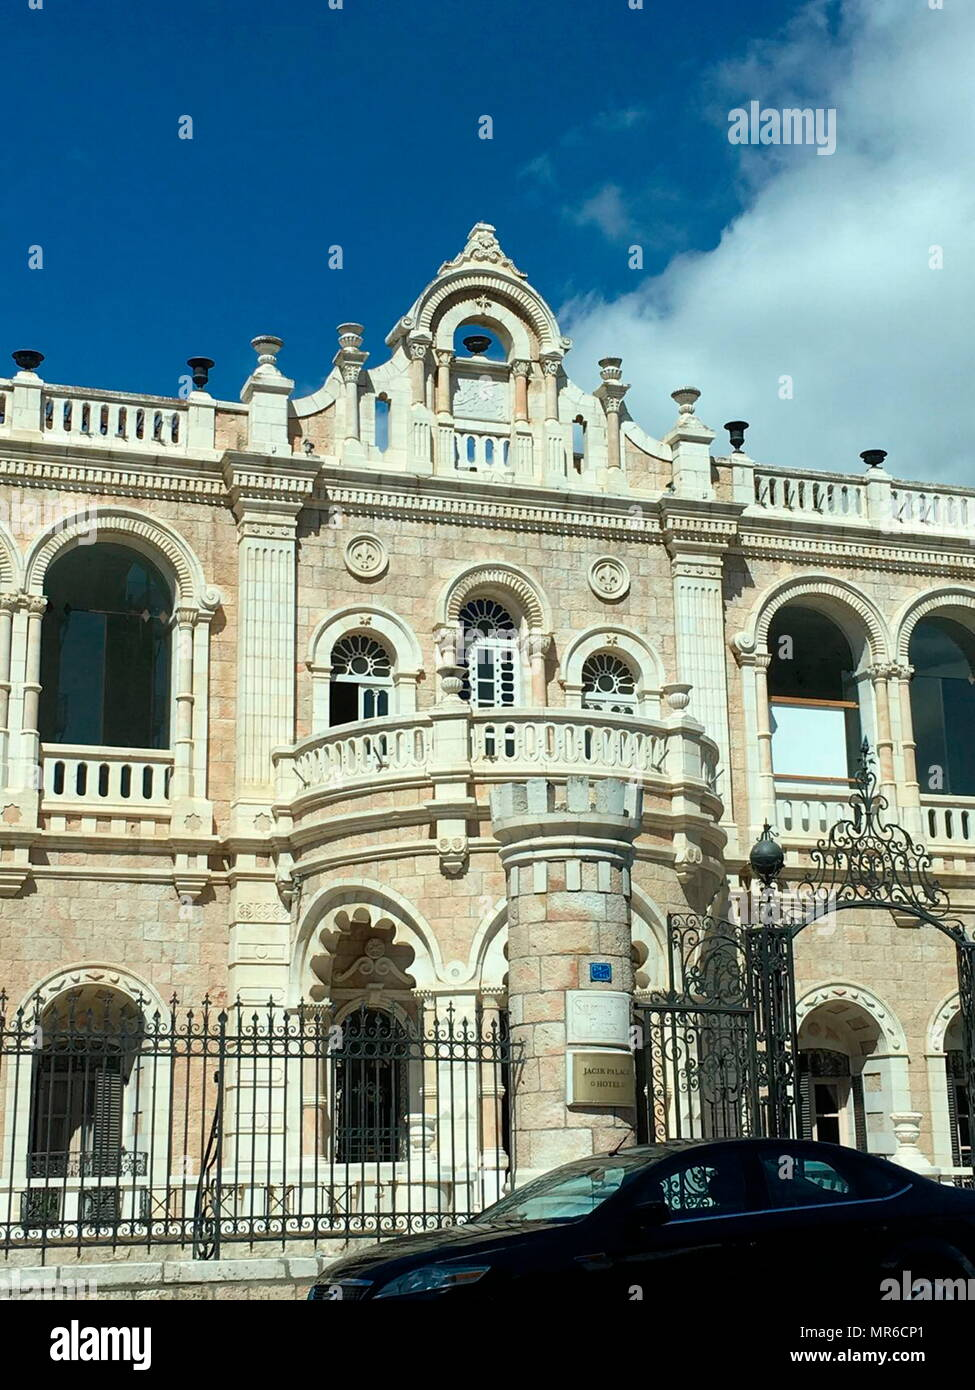 Jacir Palace or Qasr Jacir, is the largest hotel in Bethlehem in the central West Bank. The building's original design, based on typical Palestinian architecture, was built in 1910 - Stock Image